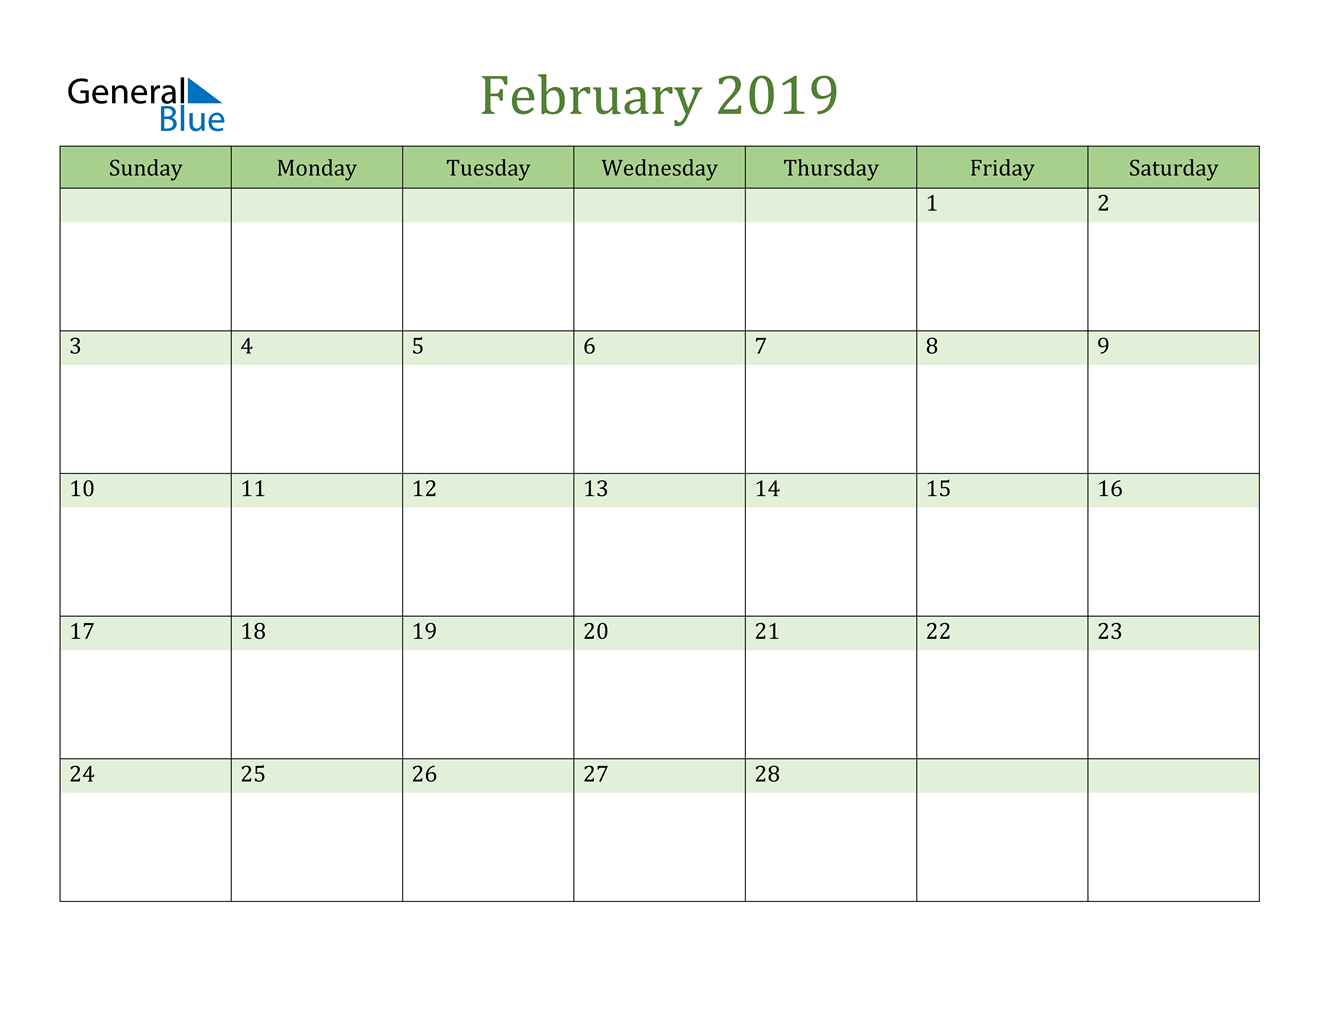 Image of February 2019 Cool and Relaxing Green Calendar Calendar